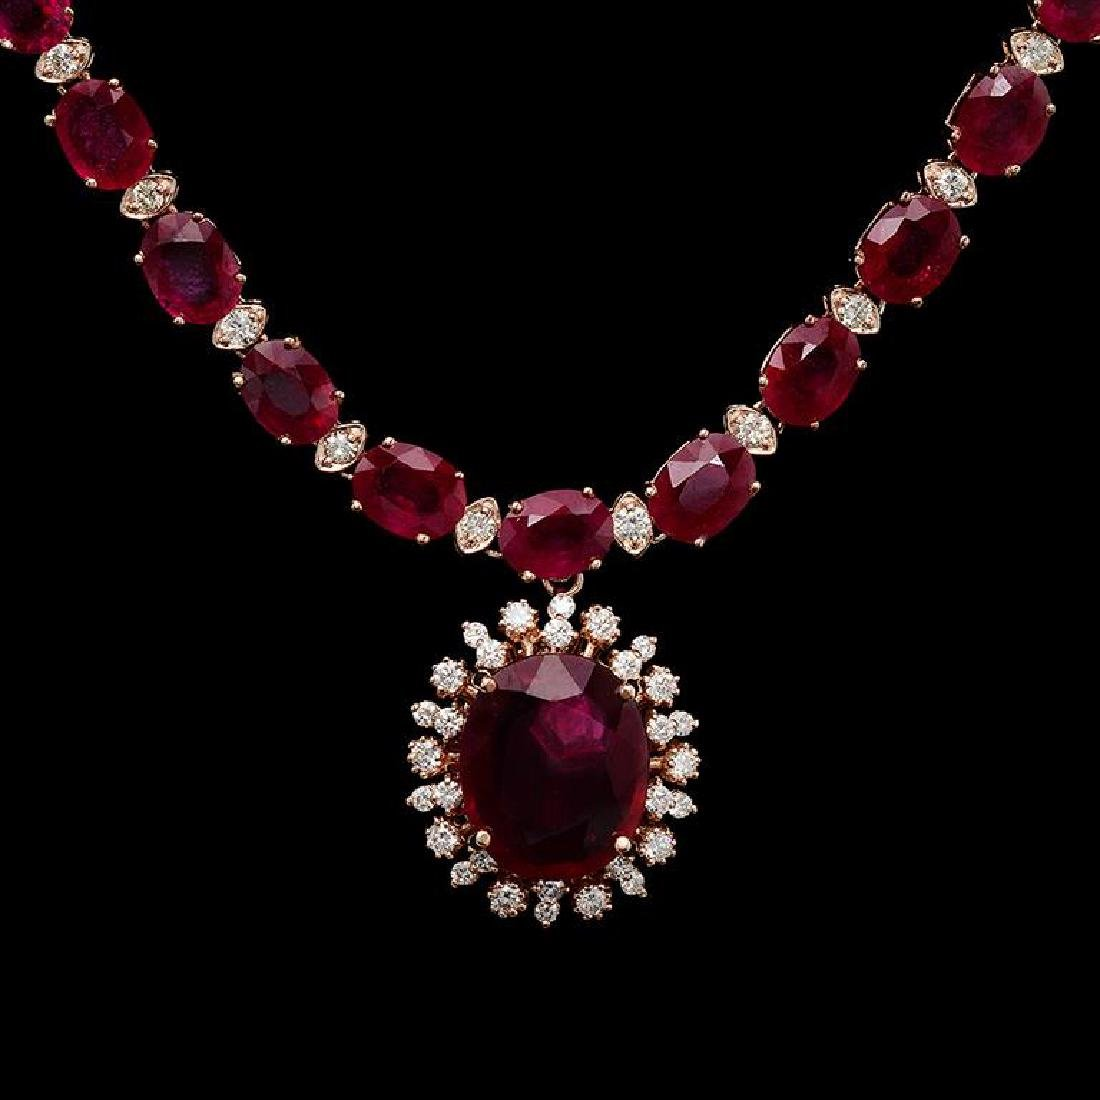 14K Gold 67.60ct Ruby & 2.55ct Diamond Necklace - 2